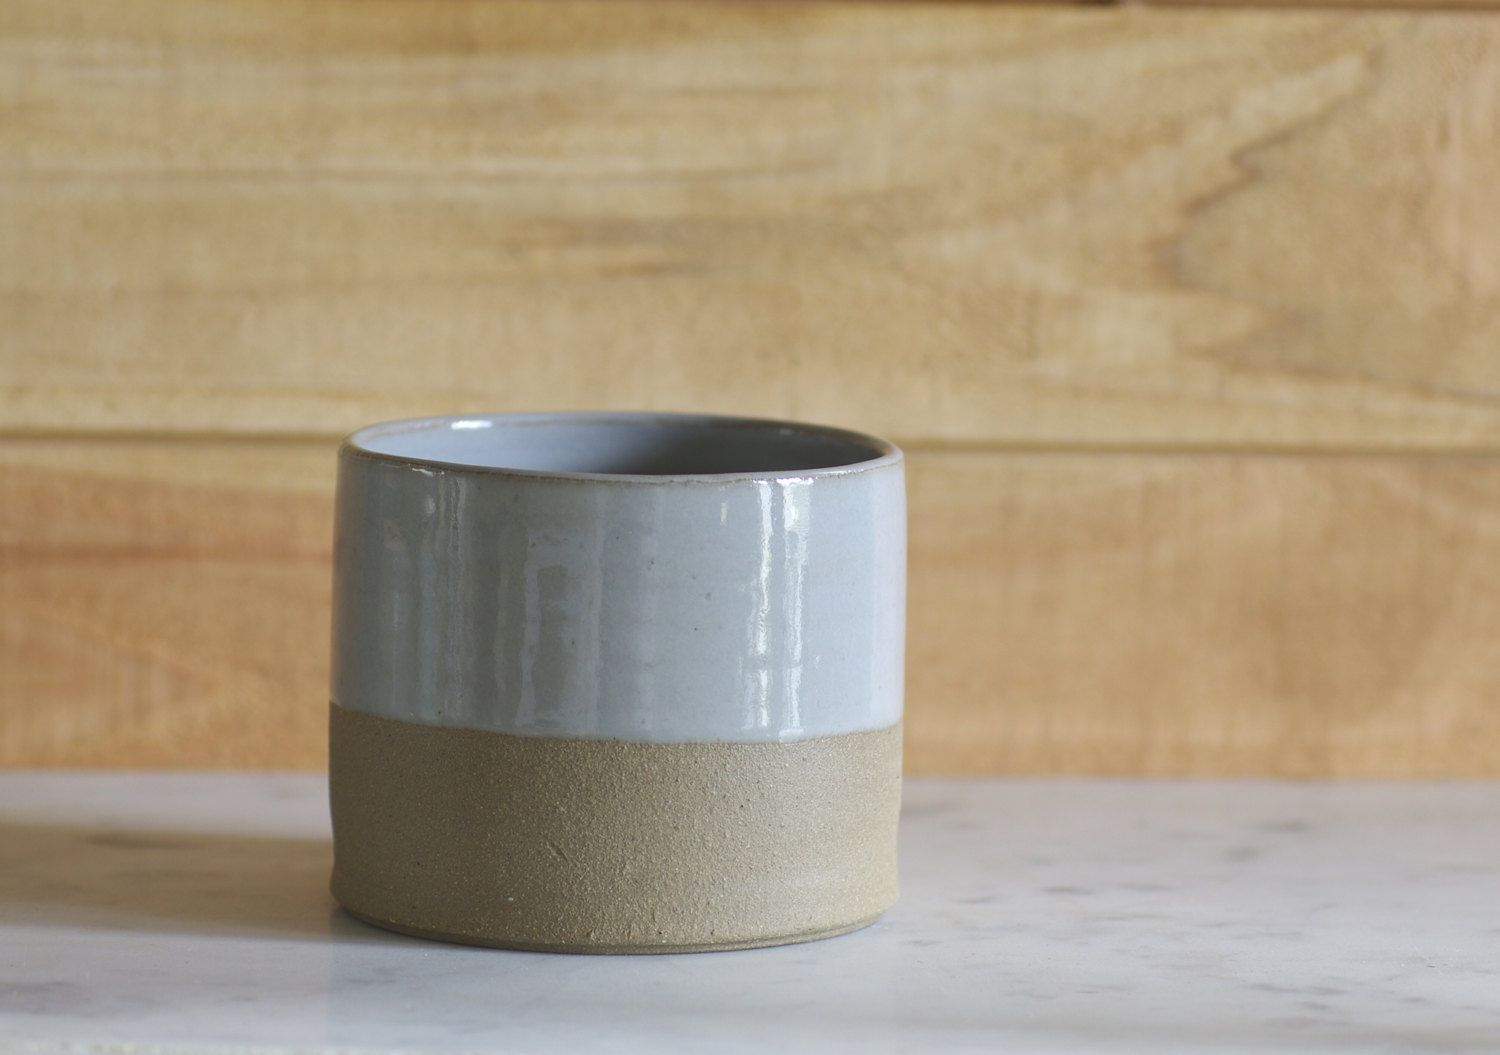 modern cup grey stoneware with grey glaze minimal rustic simple ceramic.via Etsy.